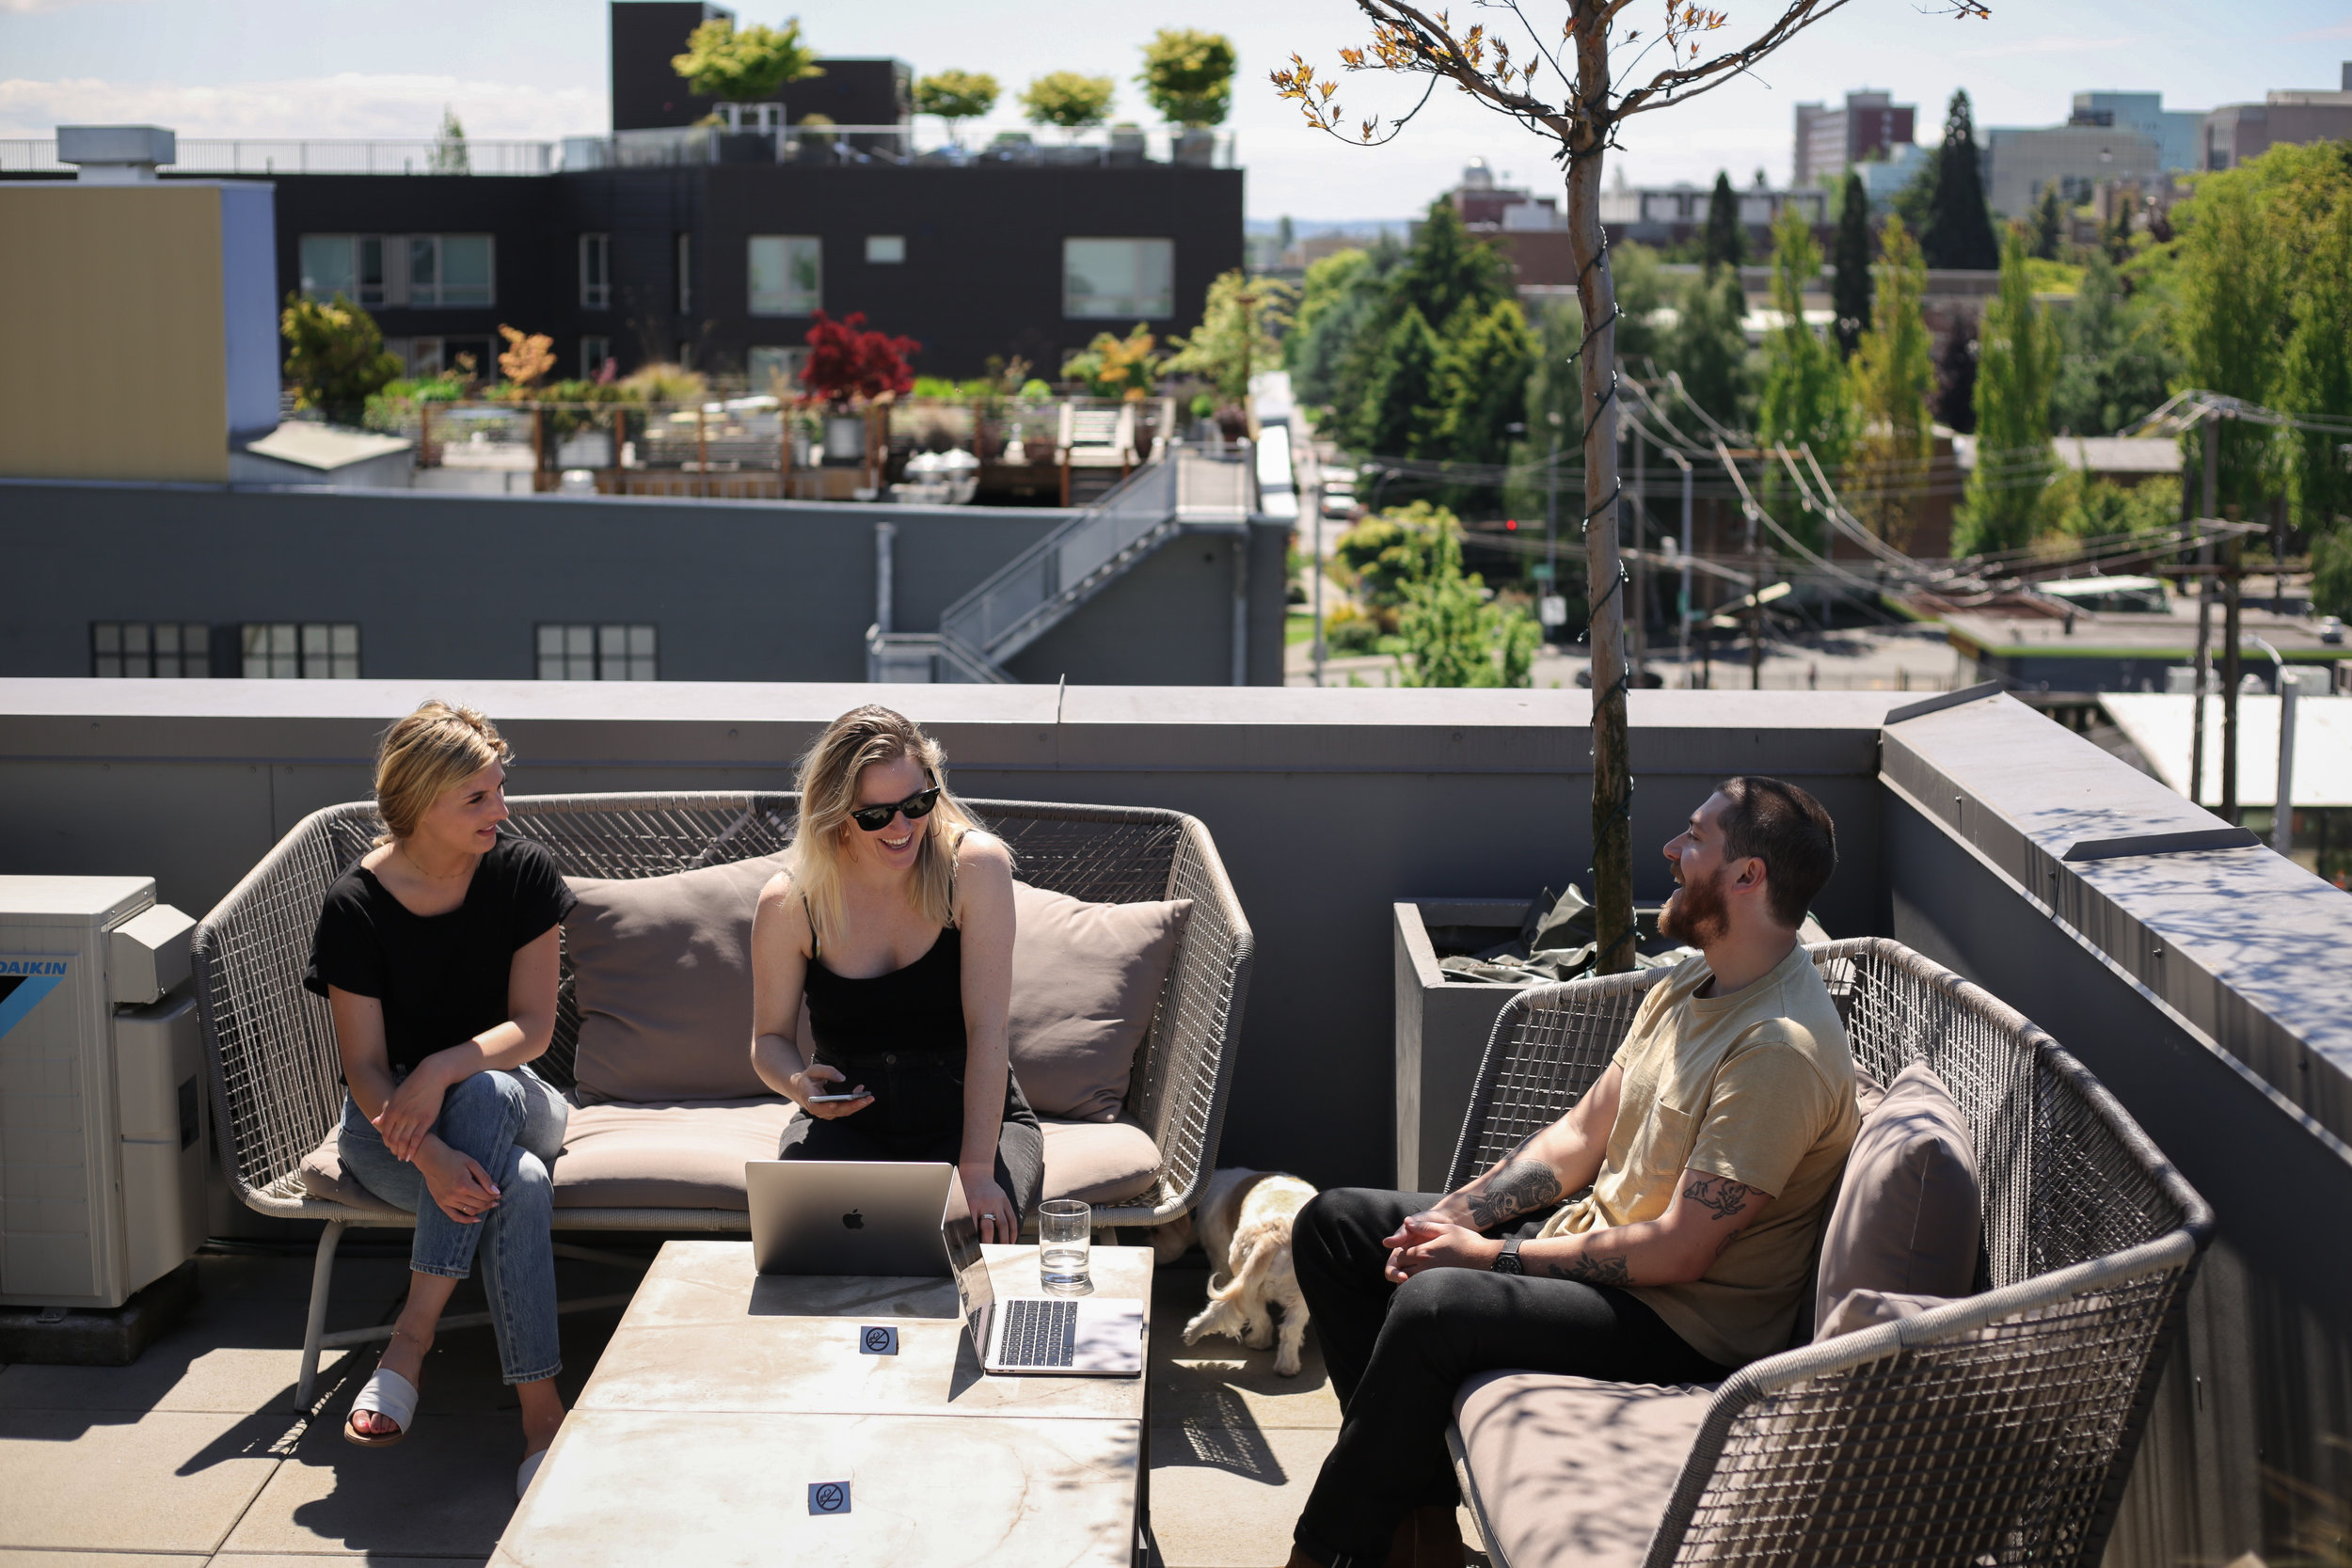 Members of The Cloud Room on the balcony enjoying the sunshine.